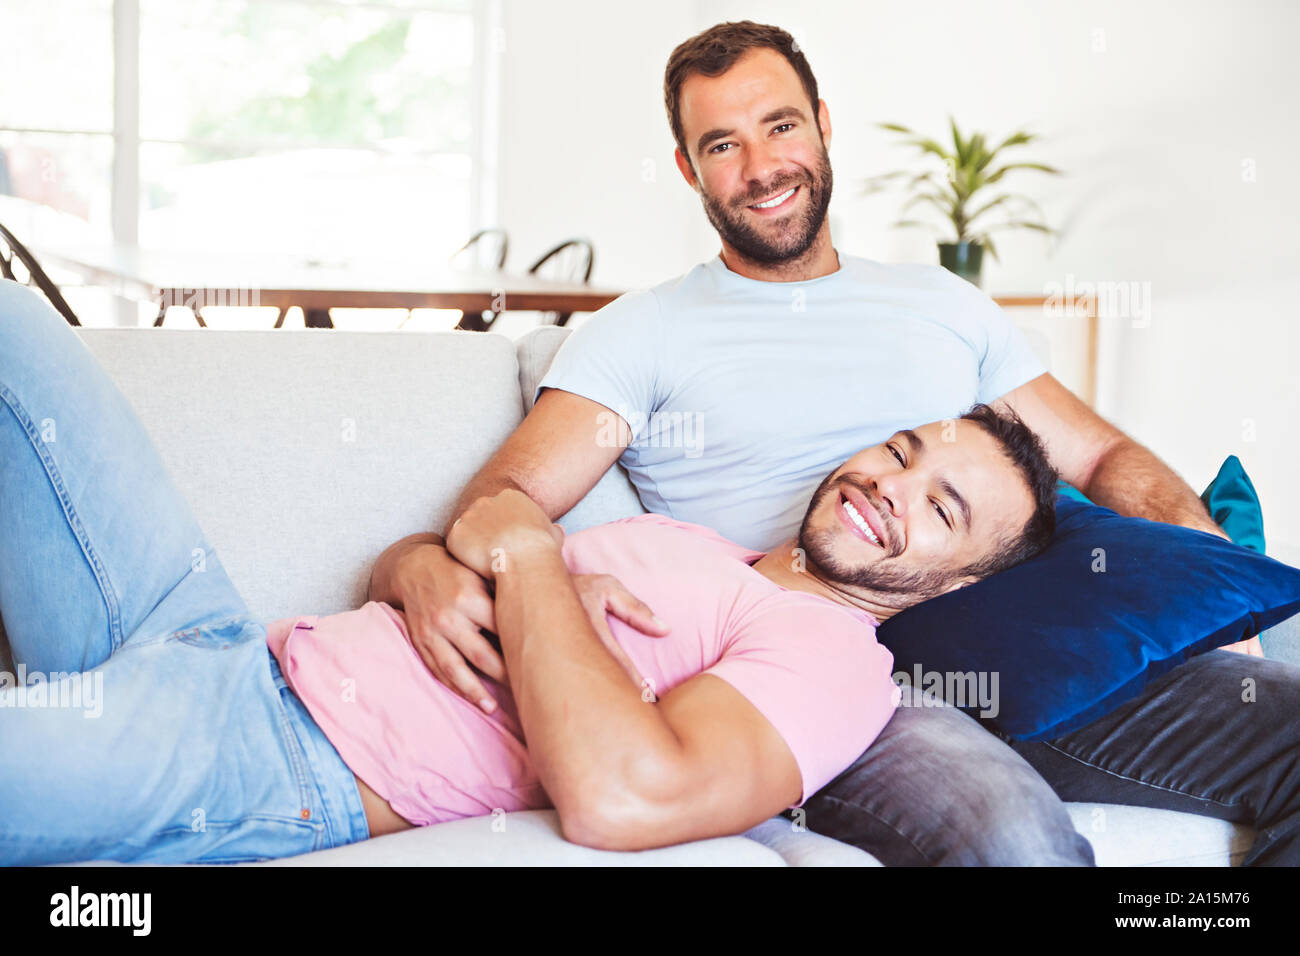 A Portrait of a Cute Male gay Couple at Home Stock Photo - Alamy